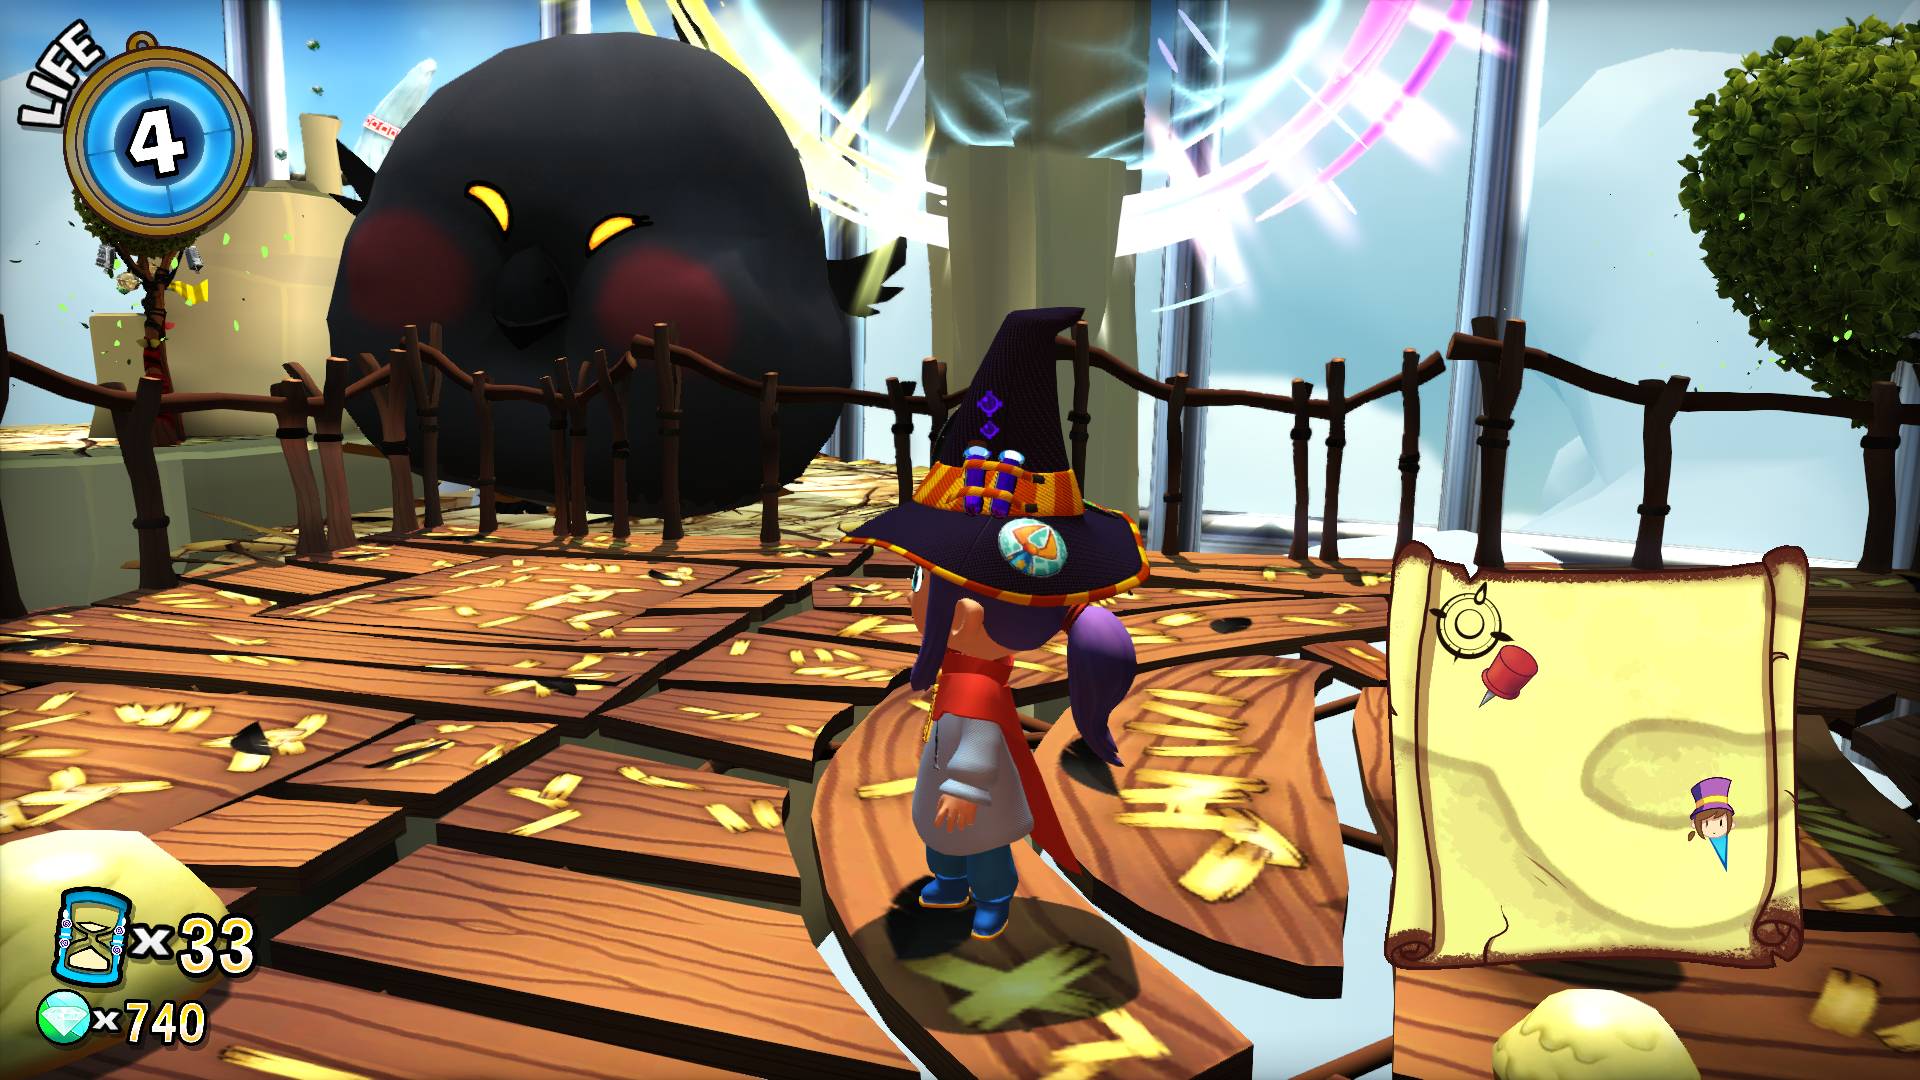 Bildergebnis für a hat in time screenshot